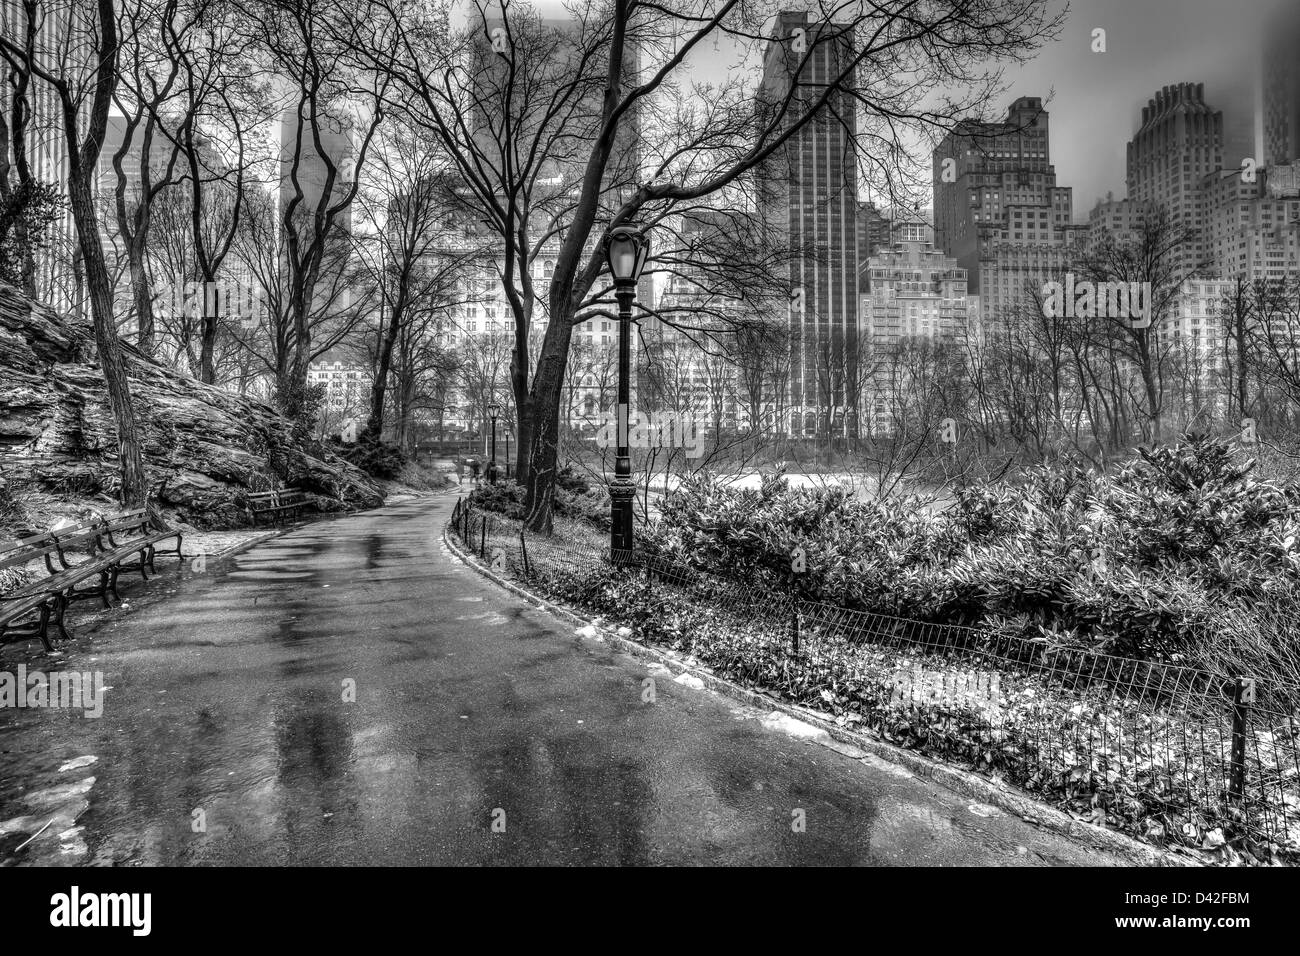 Central Park New York City After Rain Storm On Sidewalk